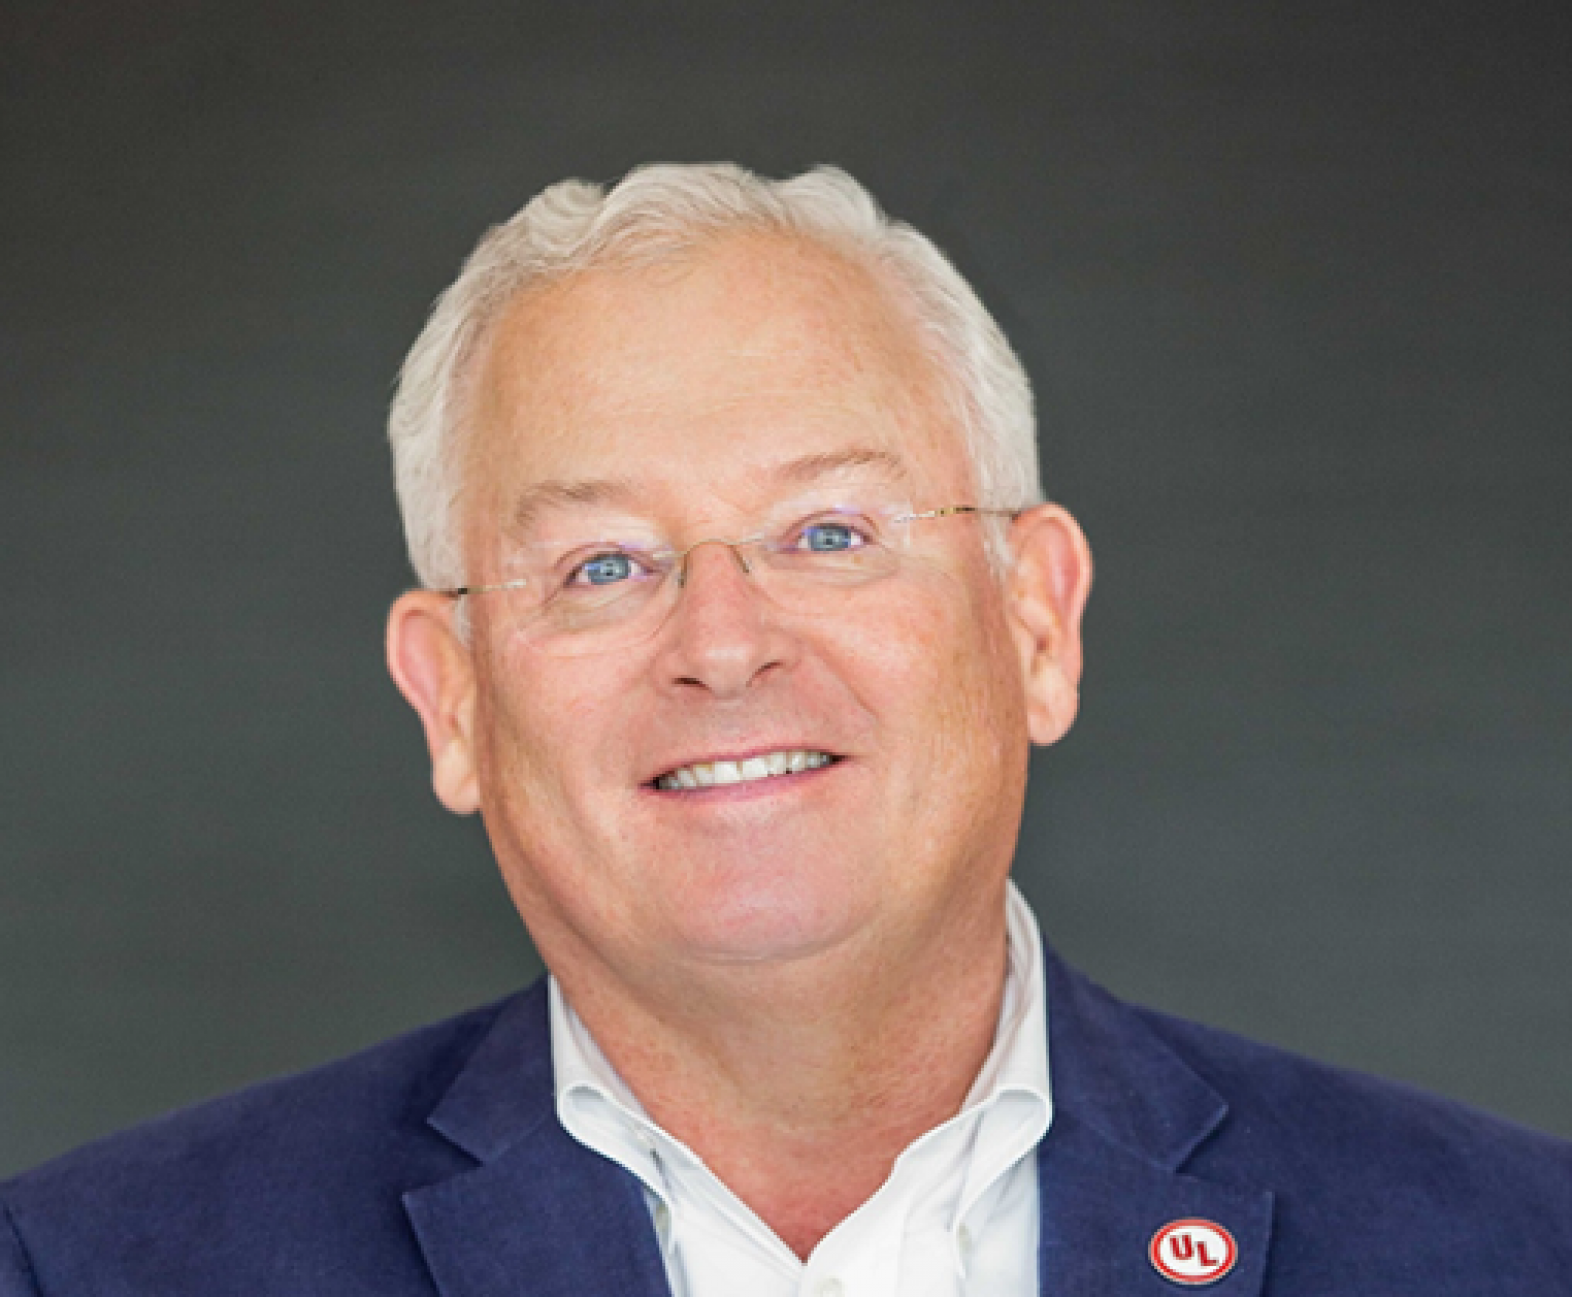 Terrence Brady Begins Role as President, CEO and Trustee of Underwriters Laboratories Inc.